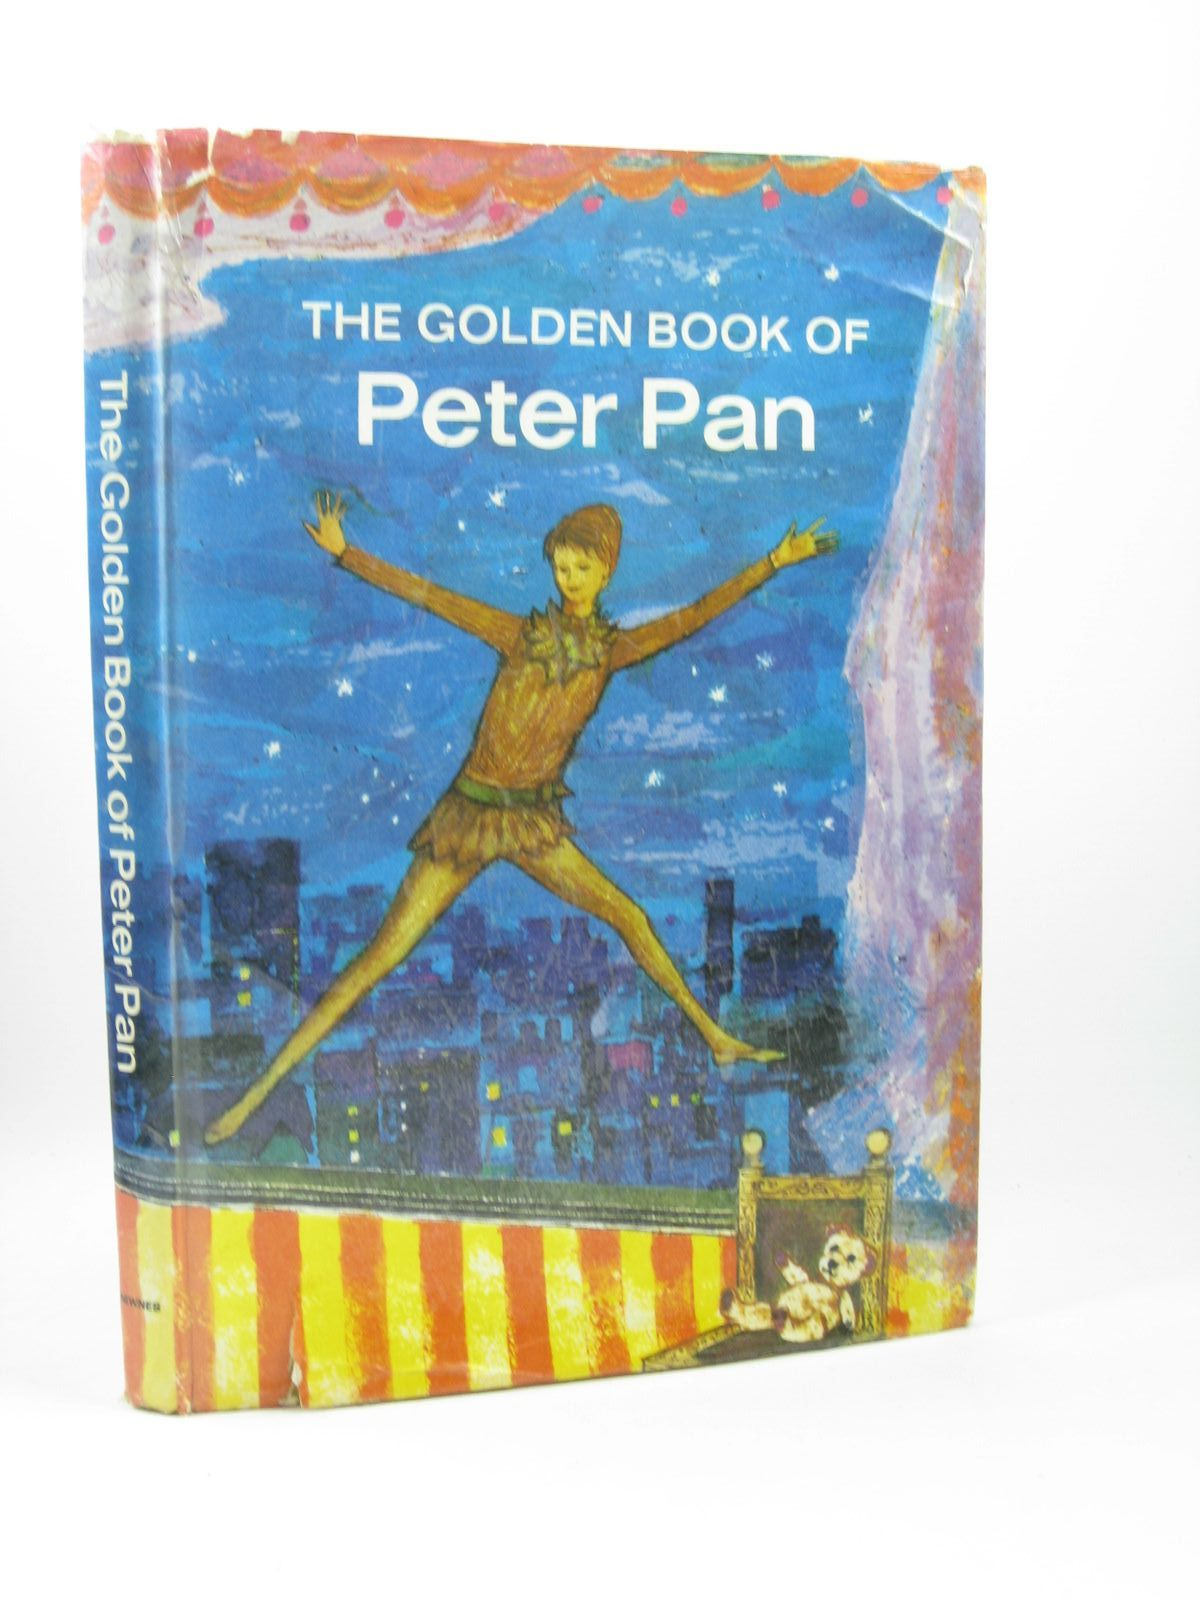 Photo of THE GOLDEN BOOK OF PETER PAN written by Owen, Robert published by George Newnes Ltd. (STOCK CODE: 1312237)  for sale by Stella & Rose's Books